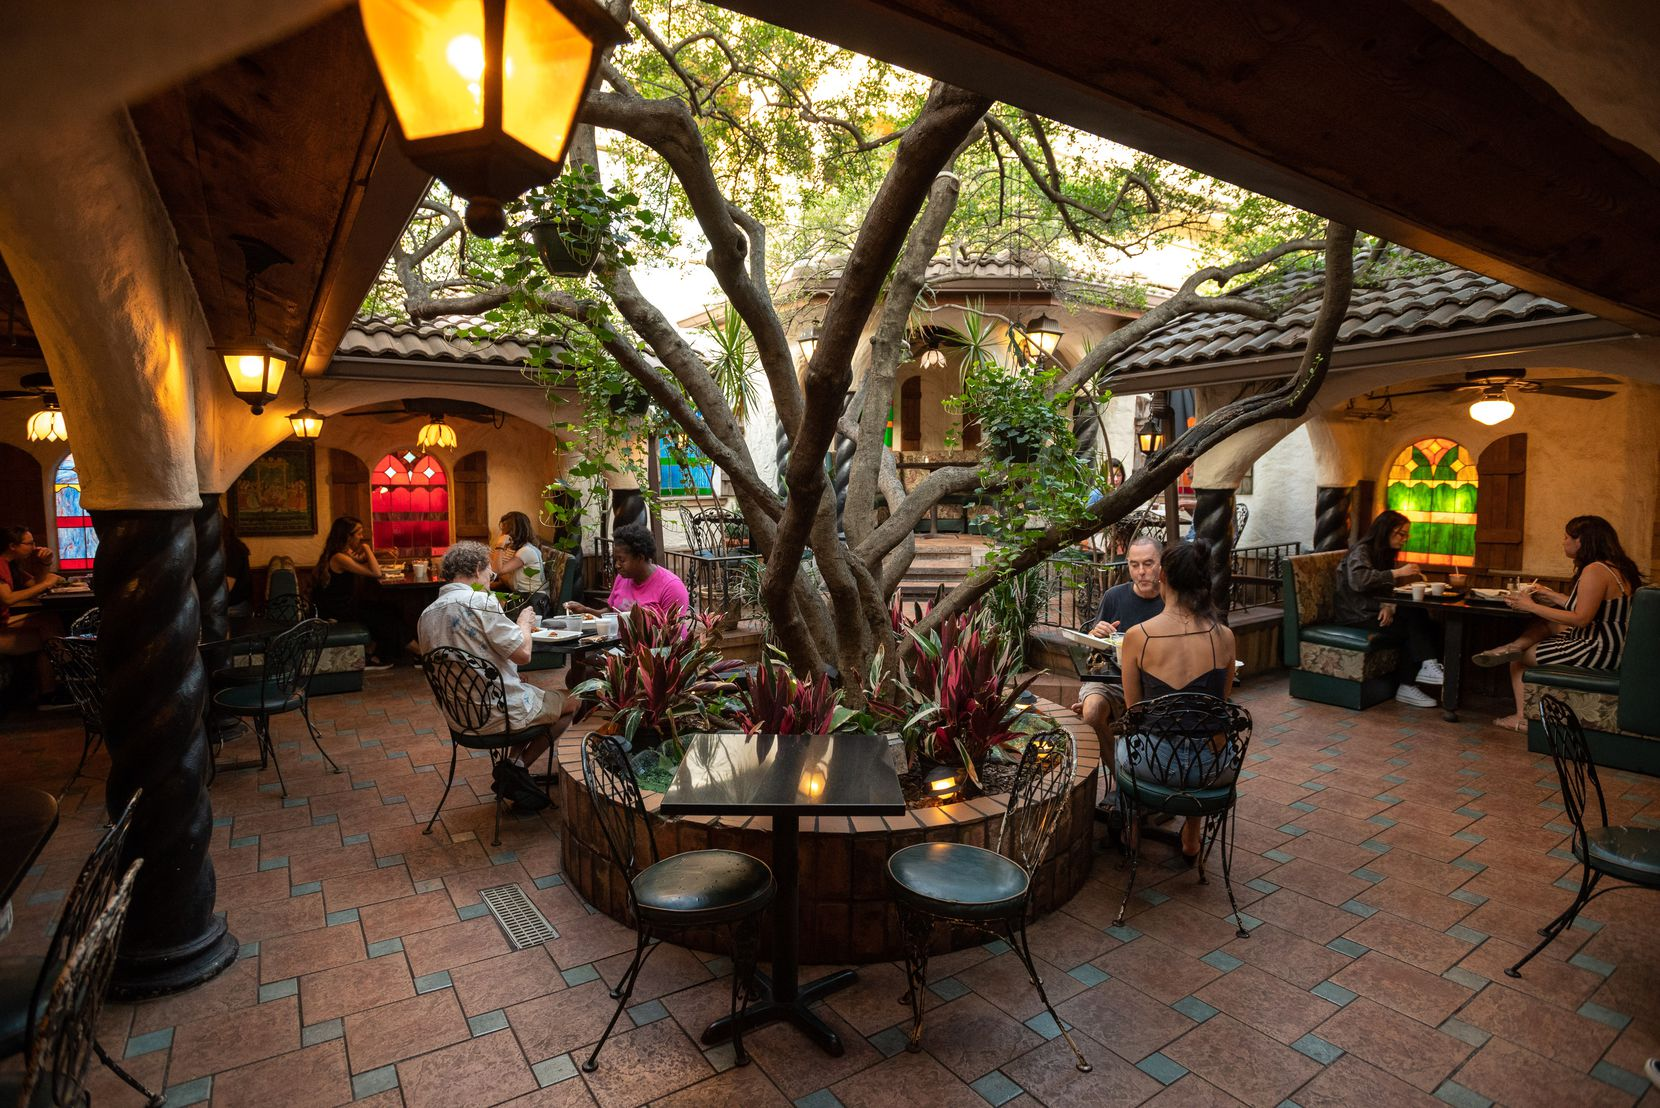 Diners outside in the patio area at Kalachandji's vegetarian restaurant on Gurley Avenue in east Dallas, on Saturday, Aug. 28, 2021. Kalachandji's is one of Dallas' last buffets.